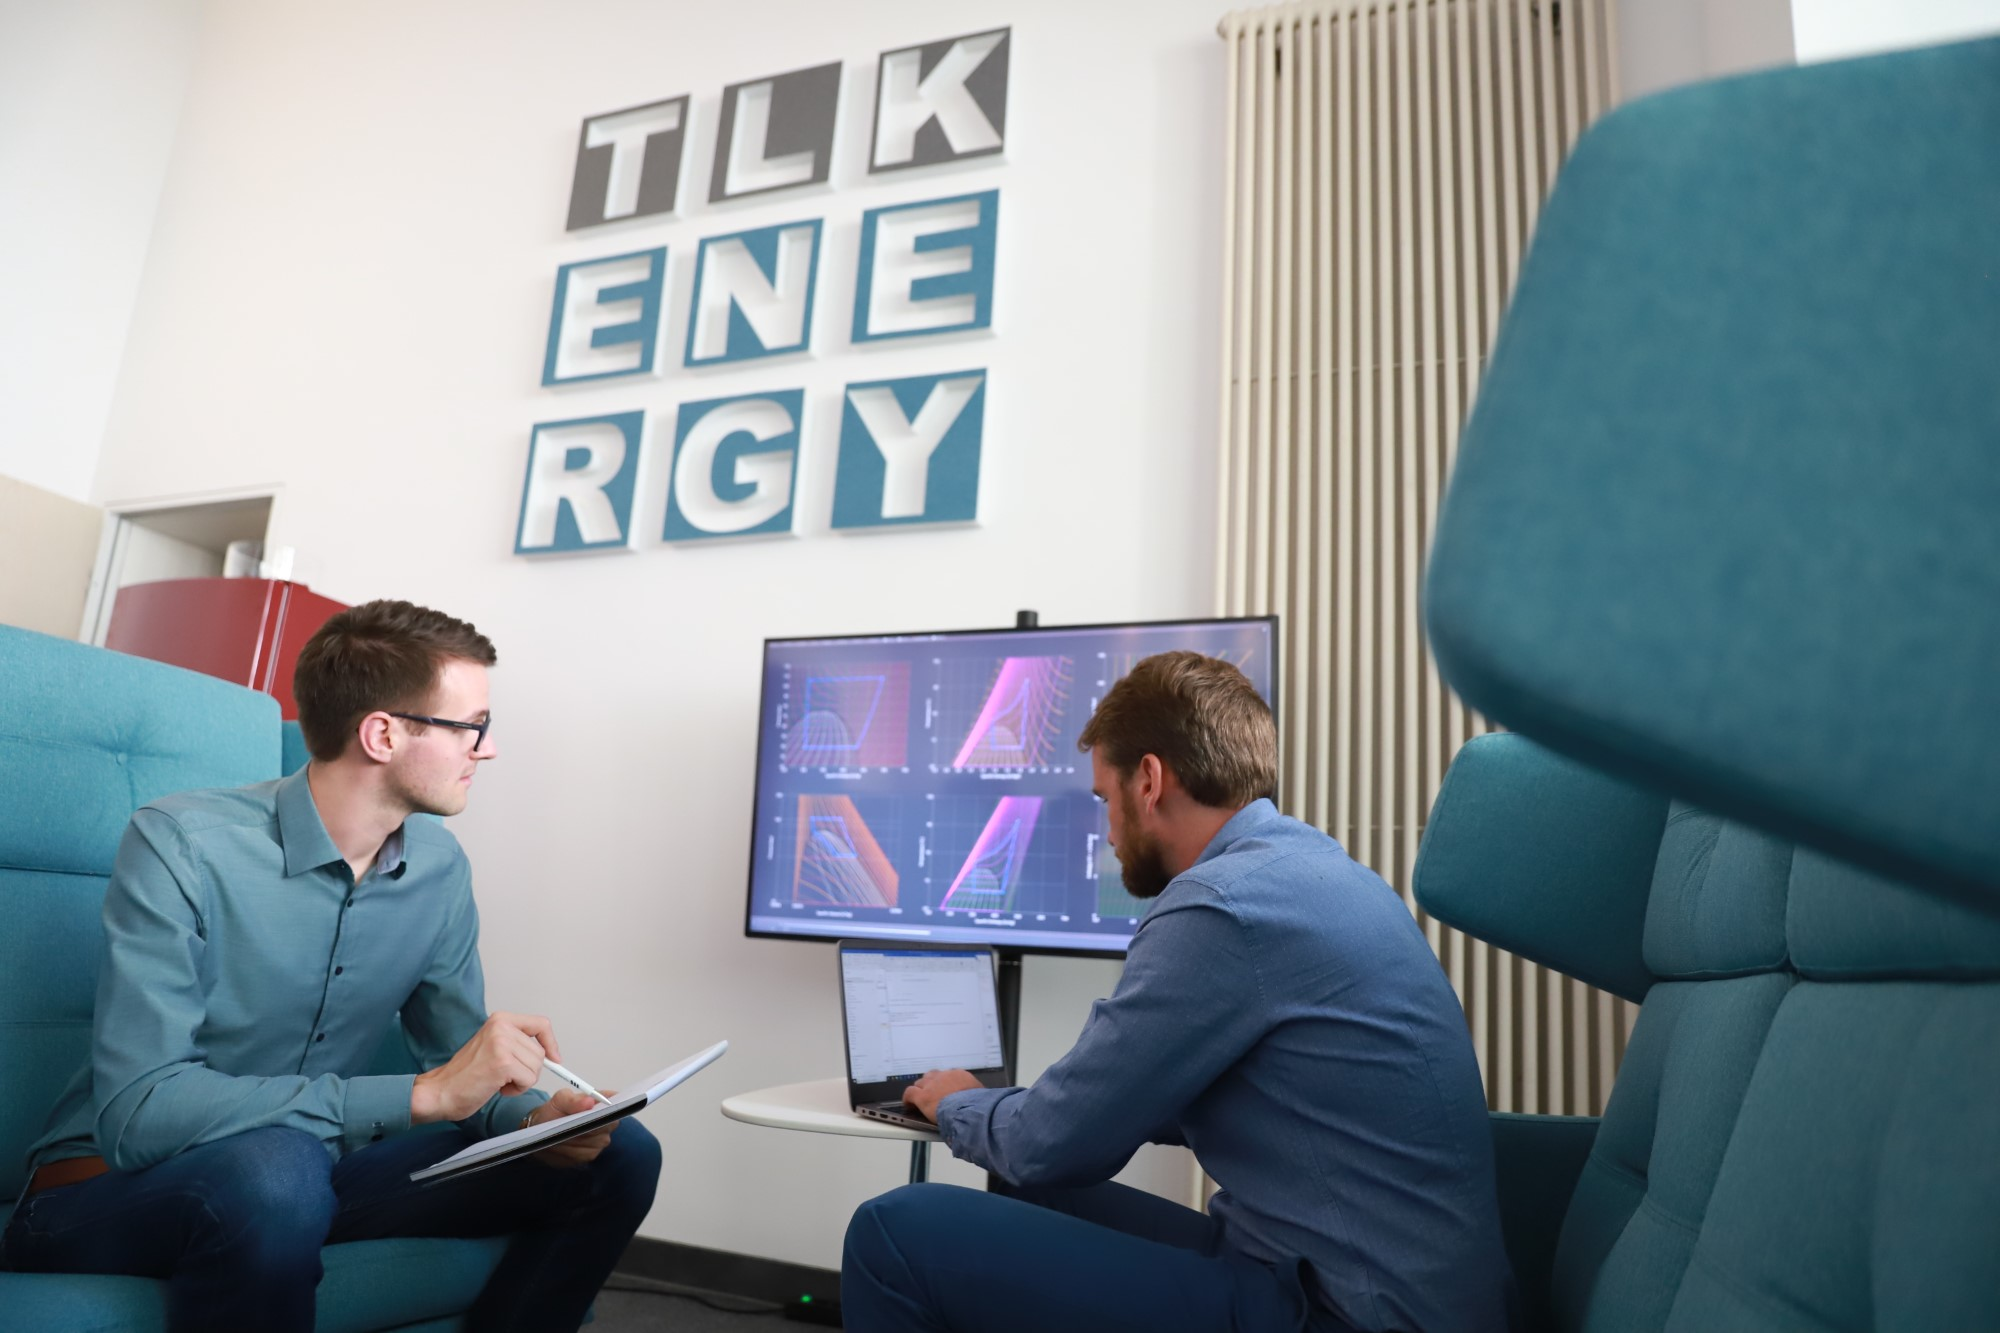 Two engineers working together on simulations